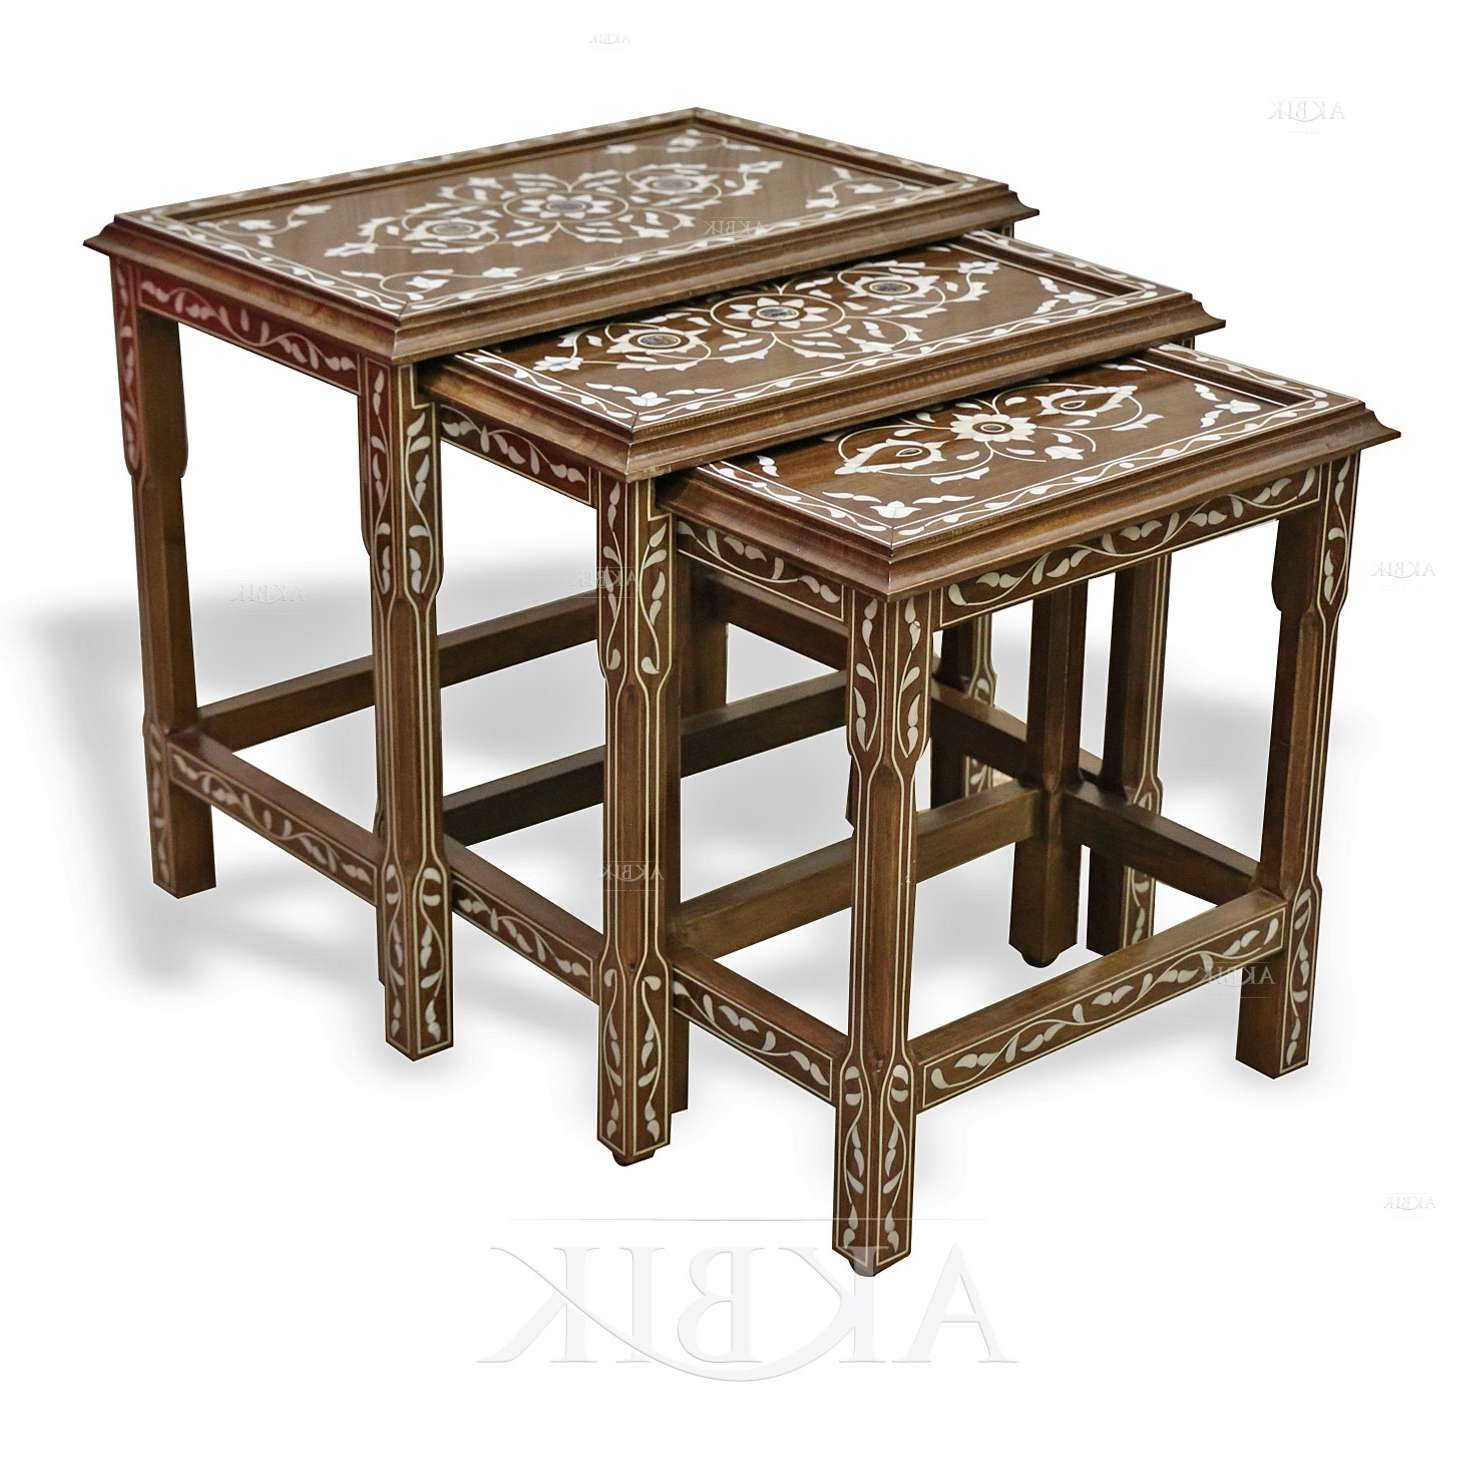 Fashionable Mother Of Pearl Coffee Tables For Mediterranean, Levantine & Syrian Furniture Inlaid With Mother Of (View 4 of 20)